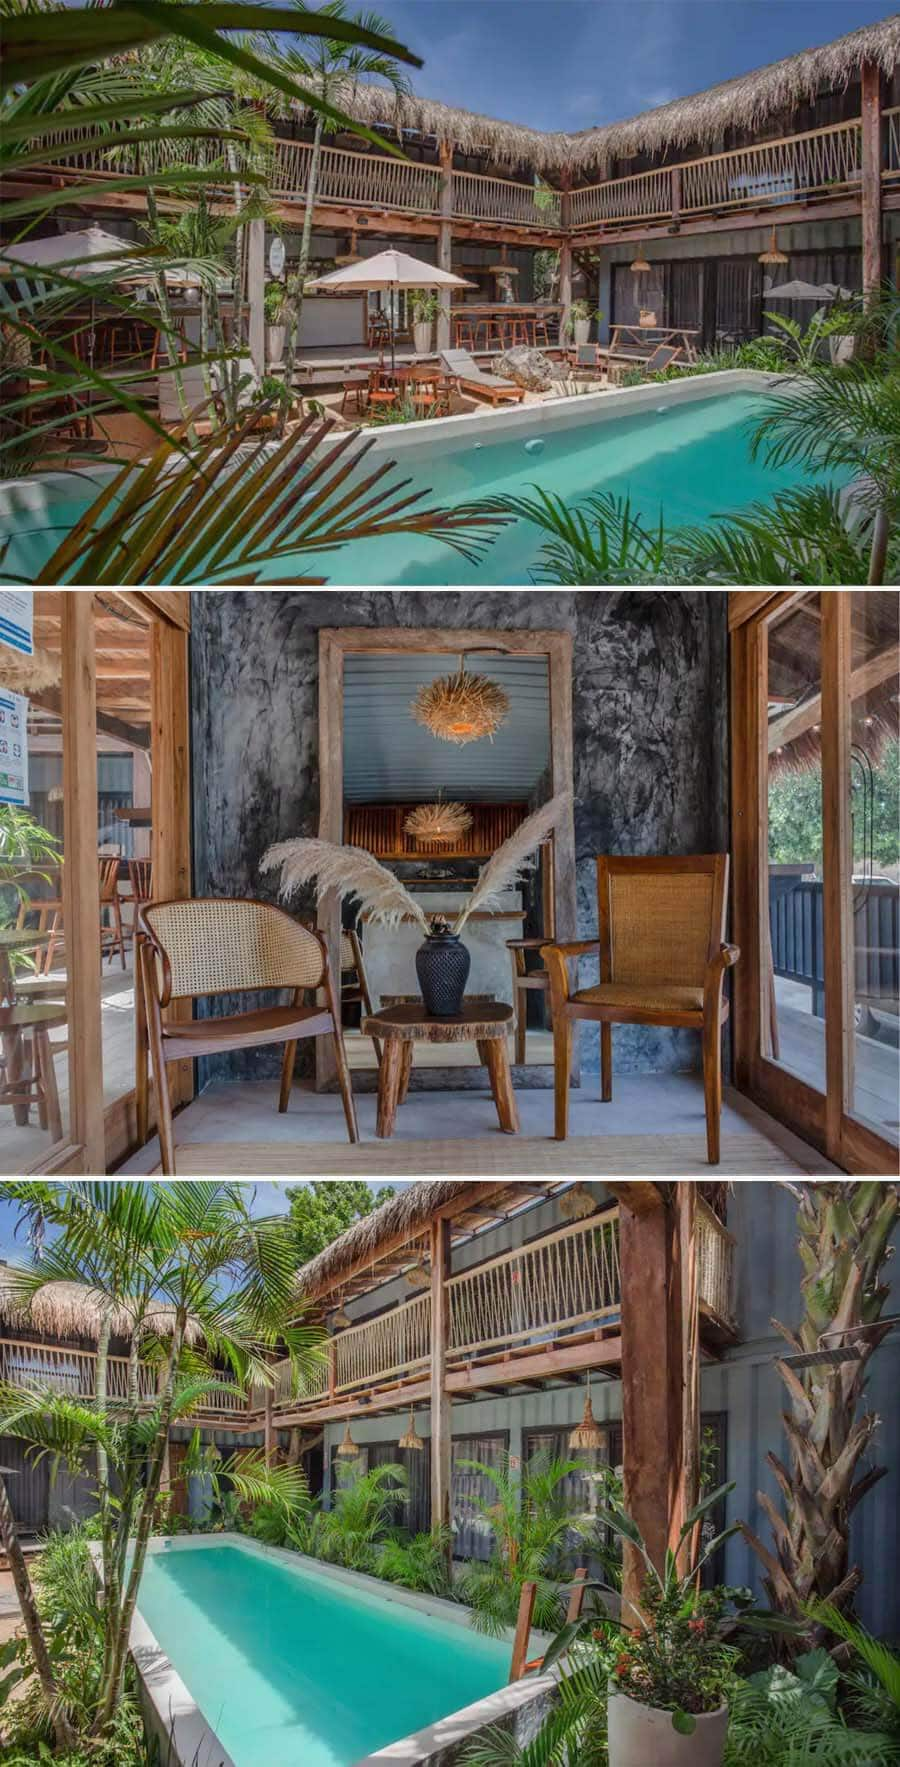 Best Airbnbs in Tulum - pool and coffeeshop